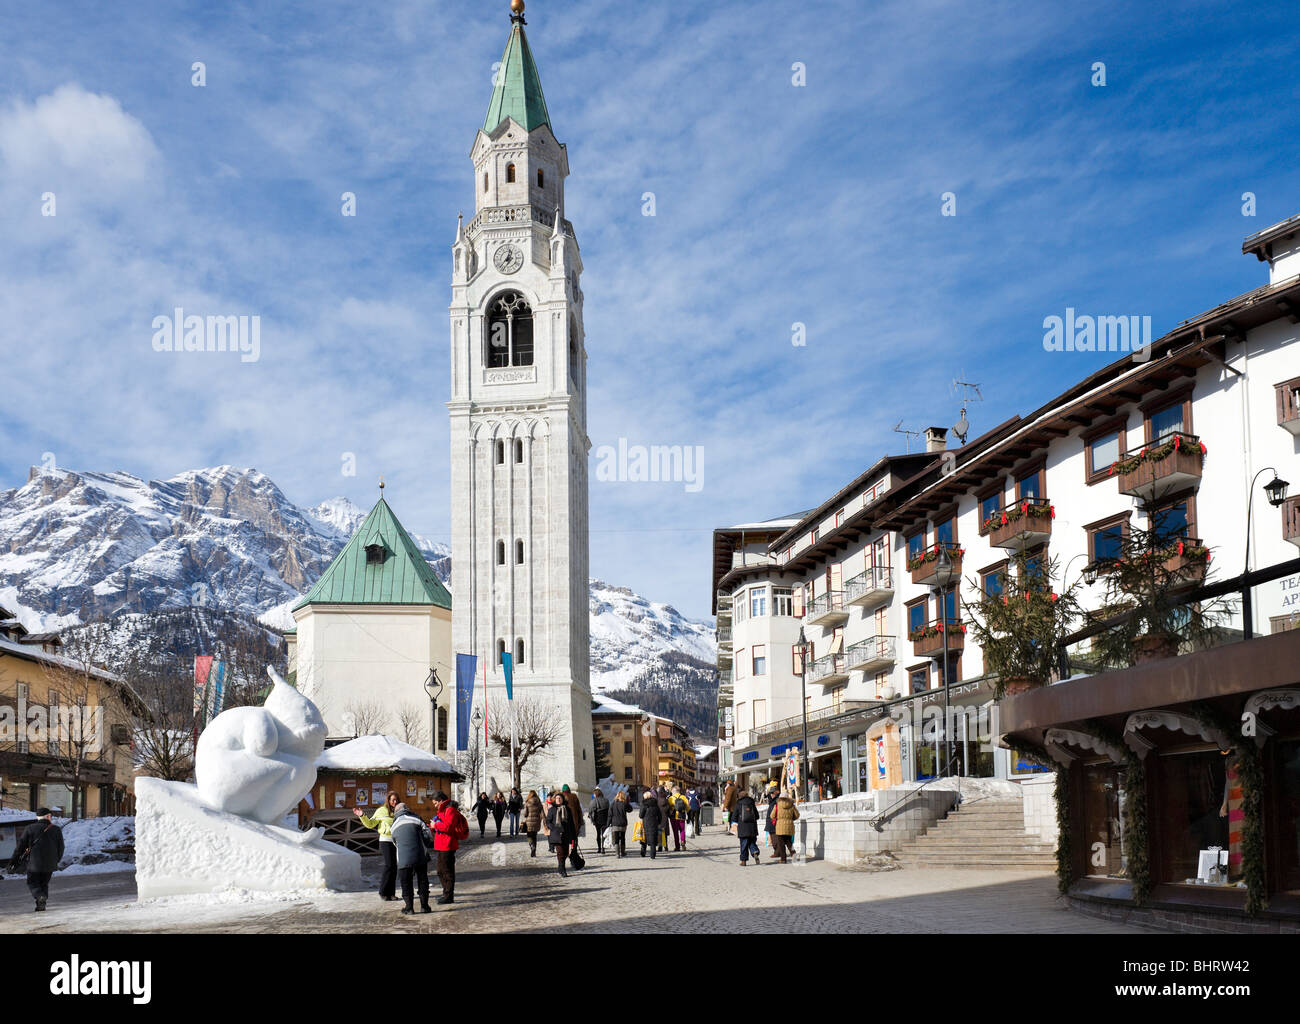 Snow sculpture in front of the church on Corso Italia, Cortina d'Ampezzo, Dolomites, Italy - Stock Image